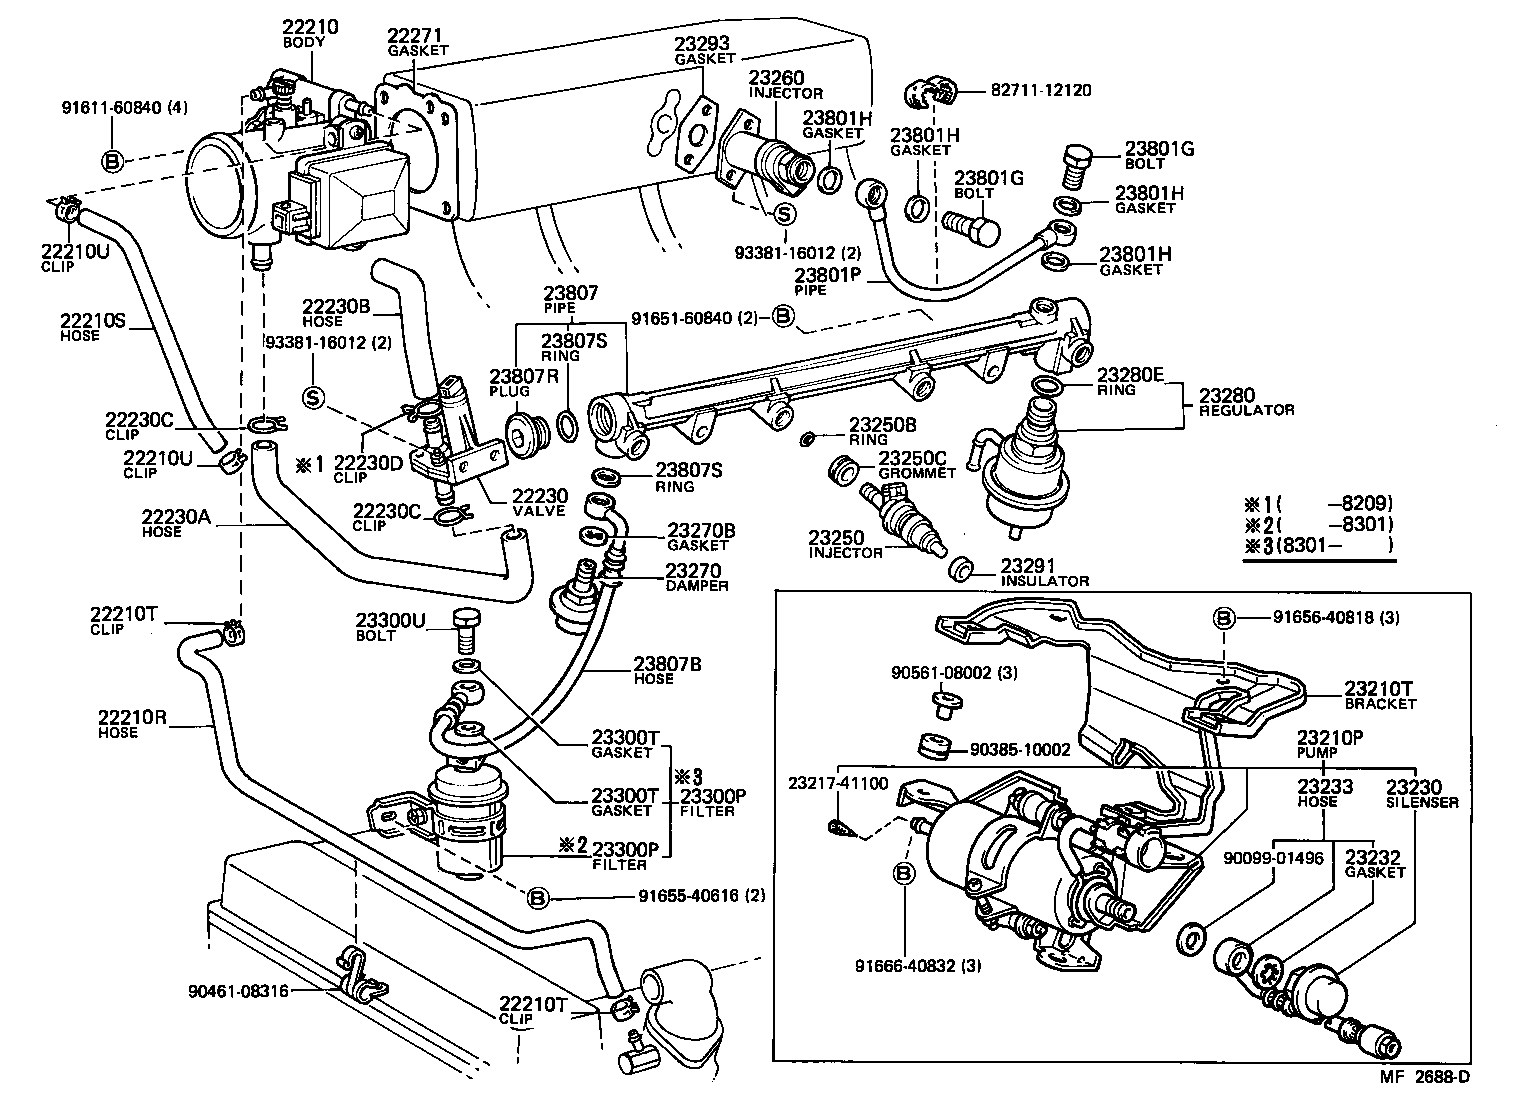 Toyota Celicata61 Bcmxf Tool Engine Fuel Injection System Efi Wiring Diagram Std Part